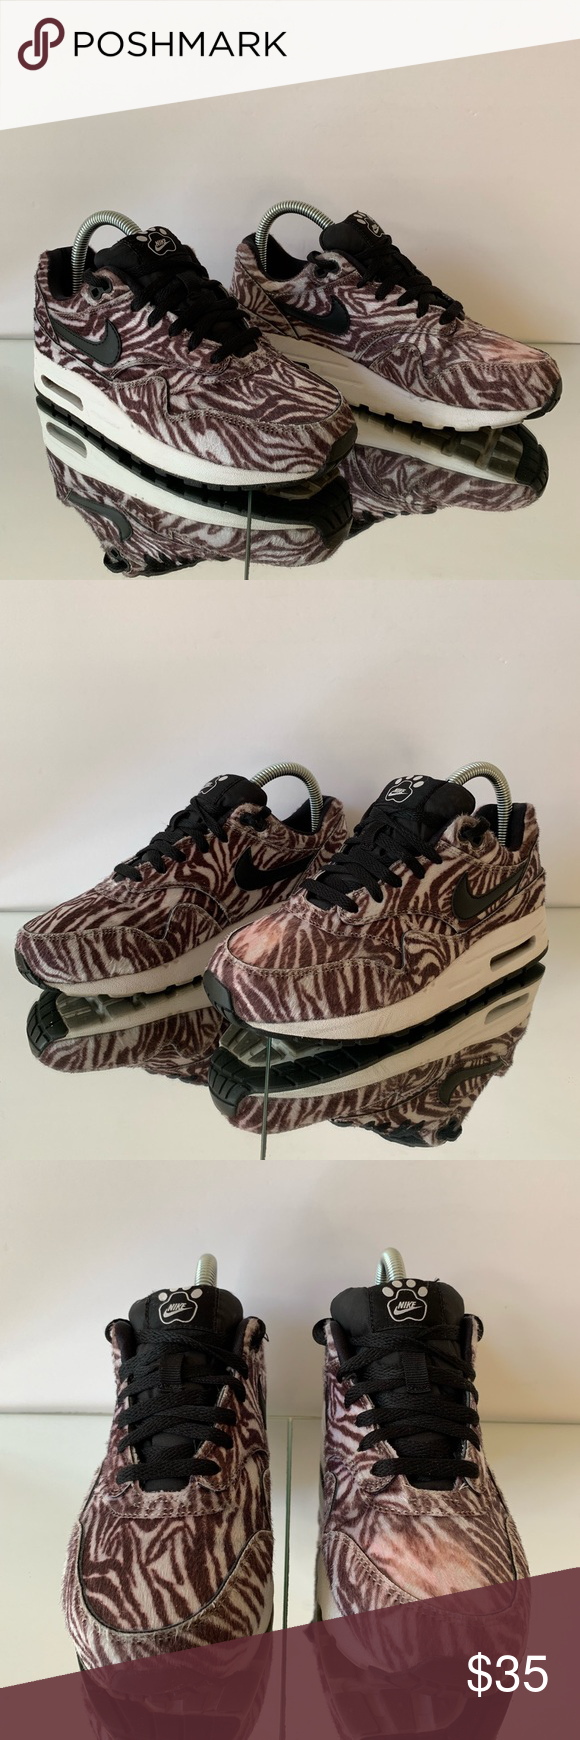 buy popular a0163 5e79b Nike Air Max 1 QS Zoo Pack Zebra Size 5.5Y Great looking Air Max 1